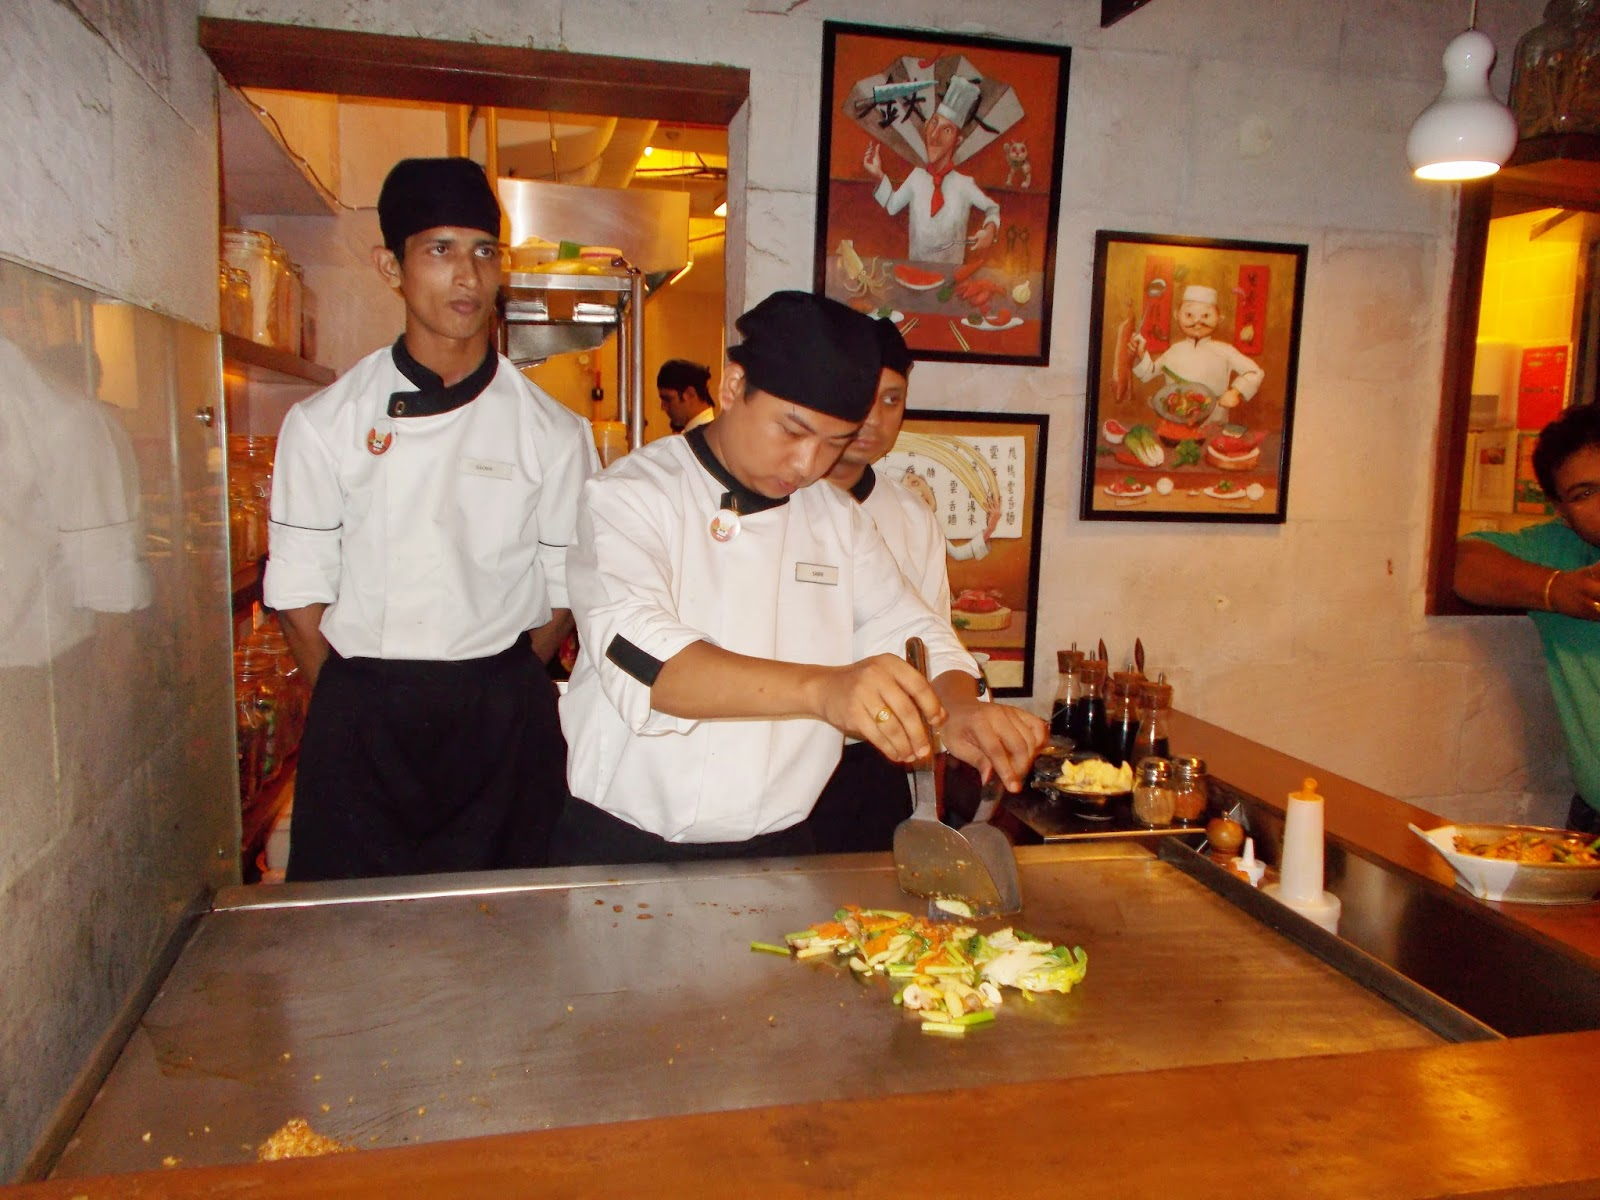 ca57766e6d6e So what is Teppanyaki  Teppanyaki is a Japanese cooking style that uses an  iron griddle to cook food. The word teppanyaki is derived from teppan